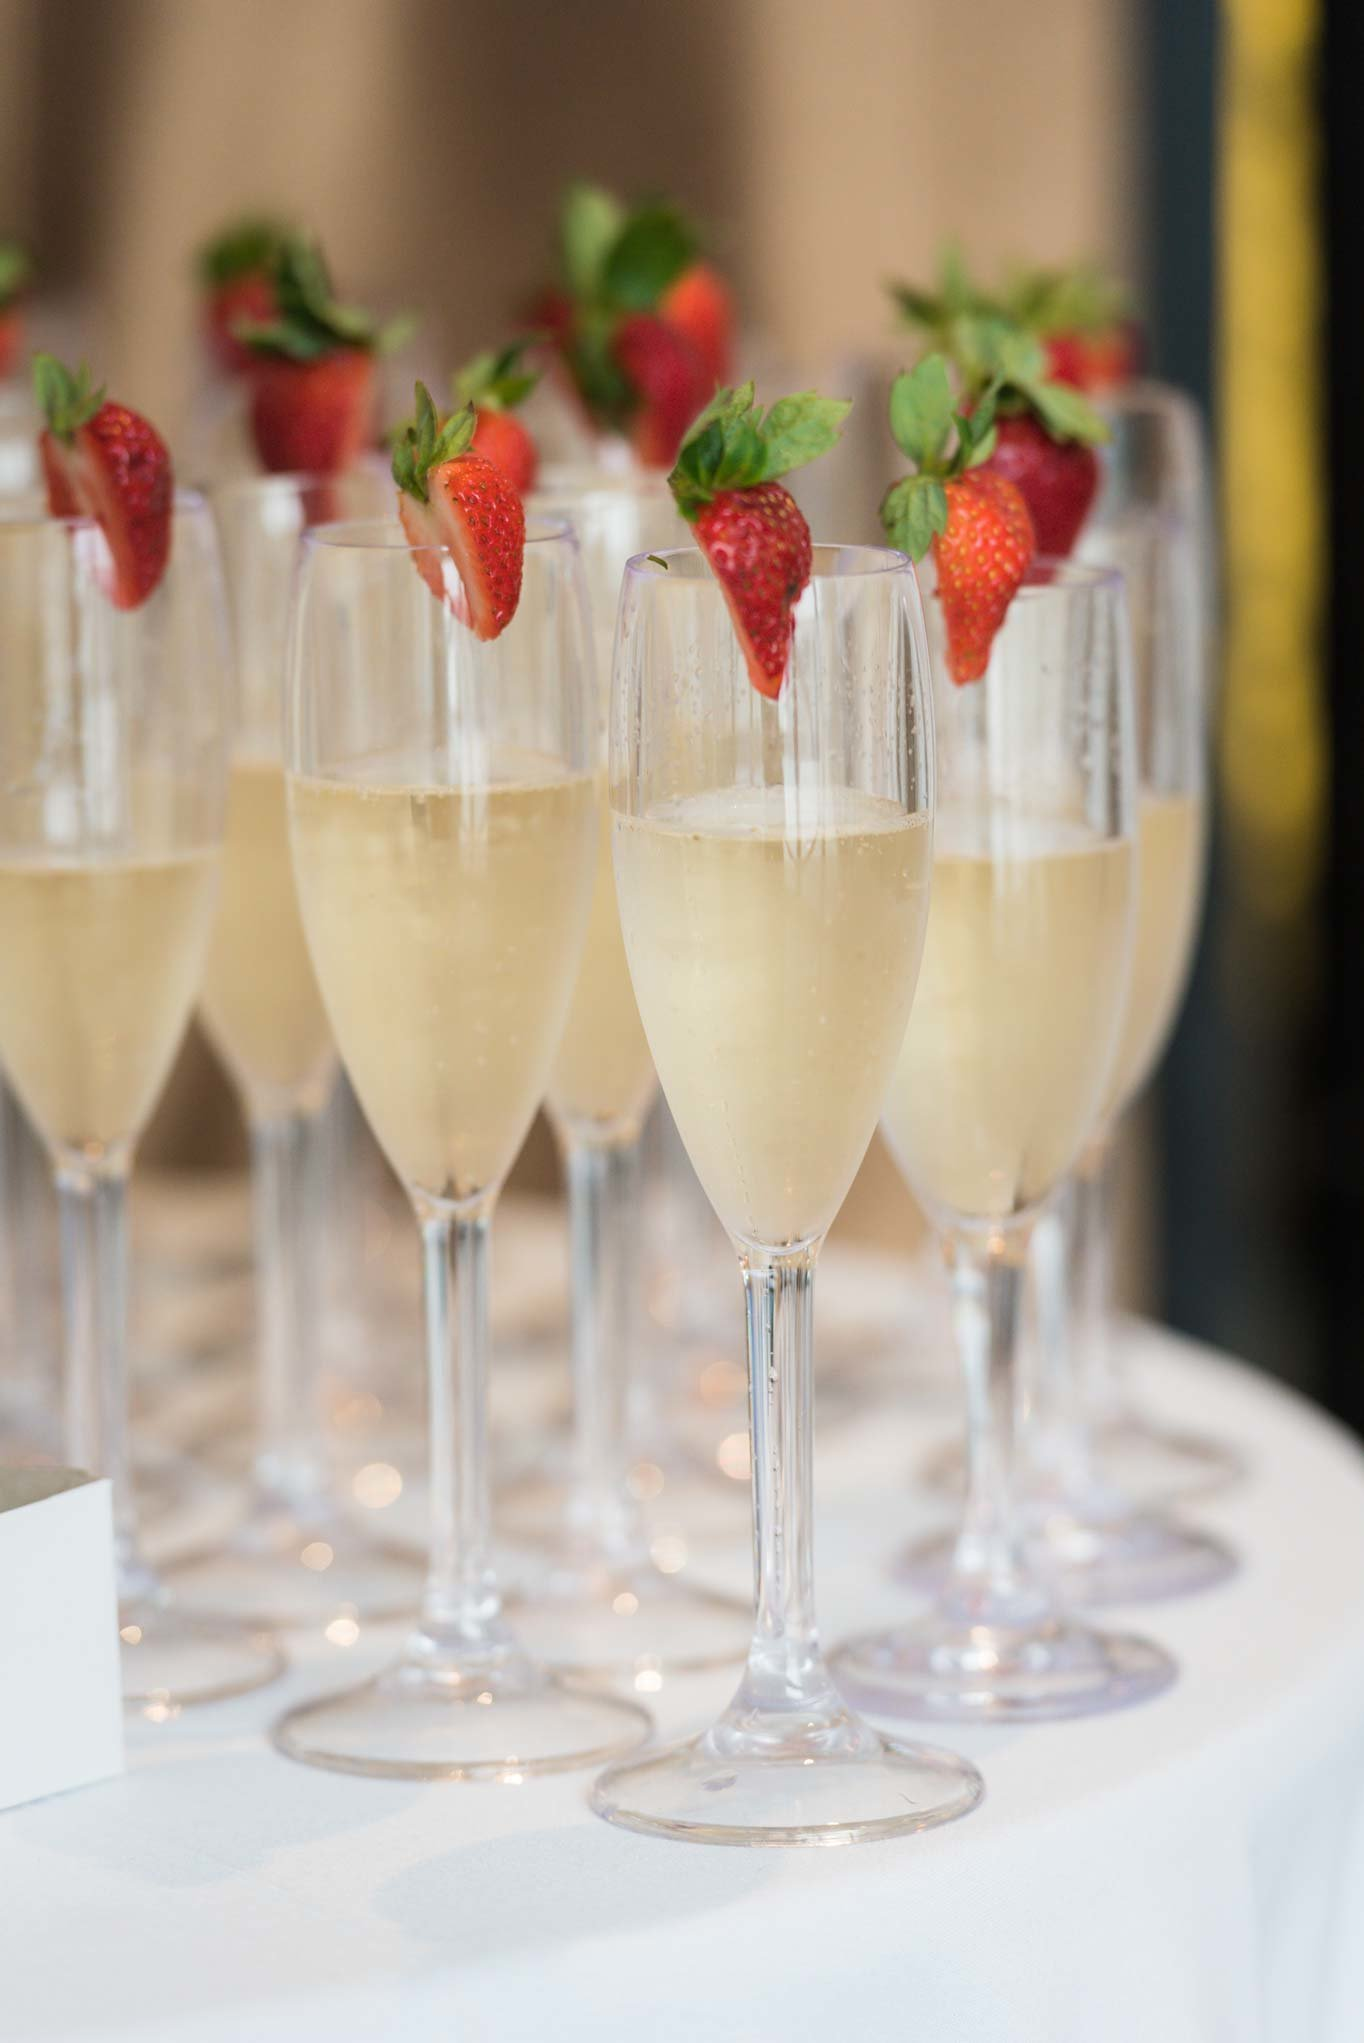 Champagne glasses with strawberries at Allegria Hotel